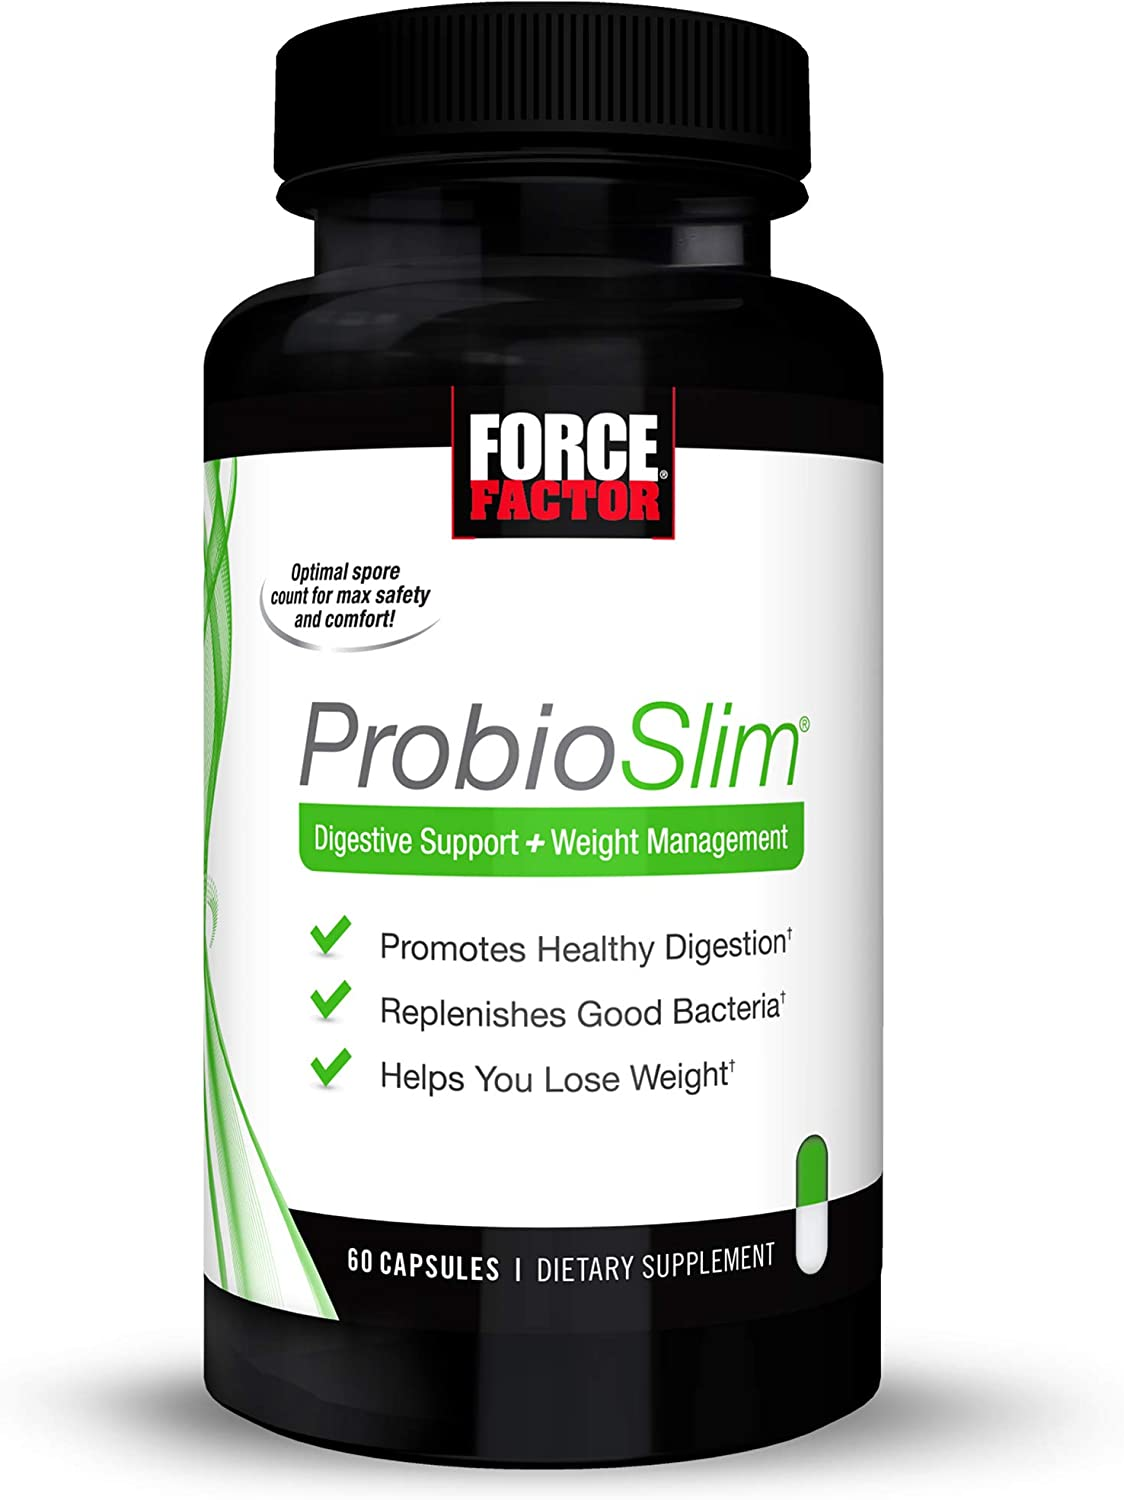 Probioslim Probiotic And Weight Loss Supplement For Women And Men With Probiotics Burn Fat Lose Weight Reduce Gas Bloating Constipation And Support Digestive Health Force Factor 60 Capsules Health Personal